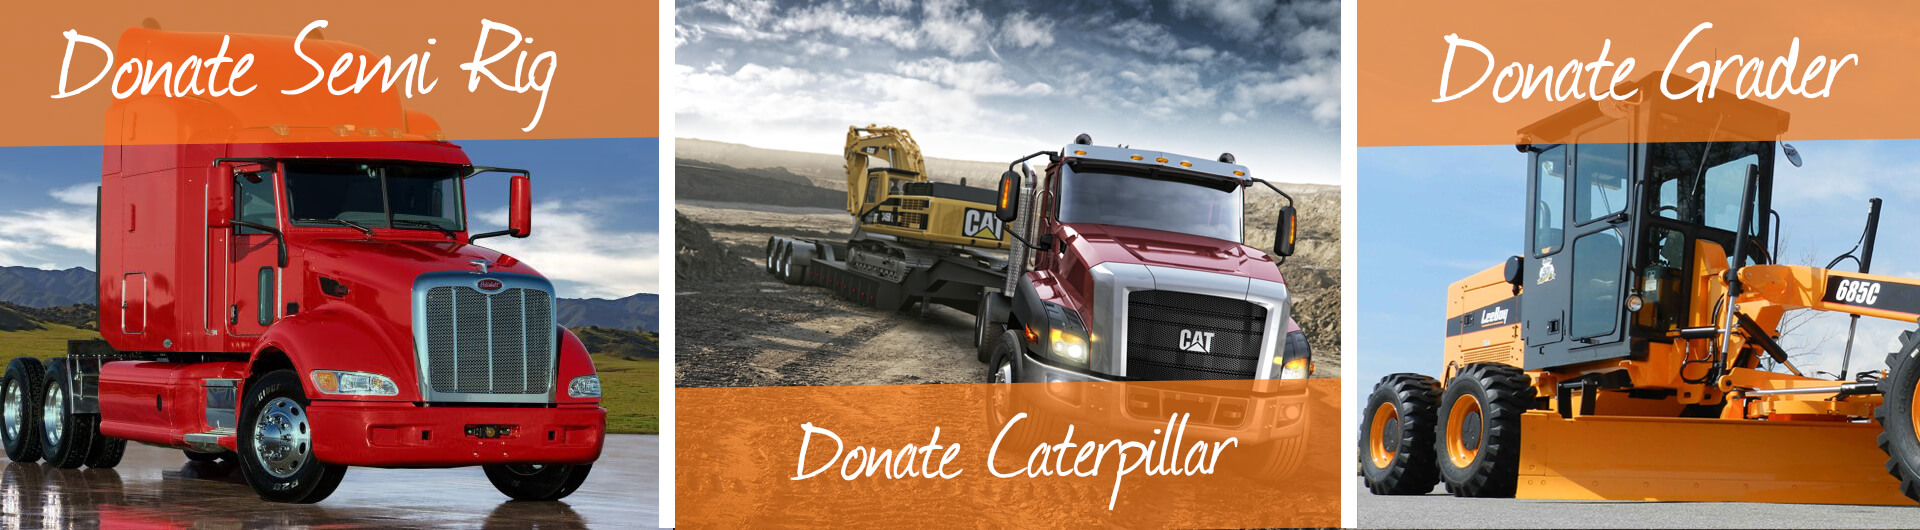 Donate Semi Truck, Caterpillar, Grader Banner